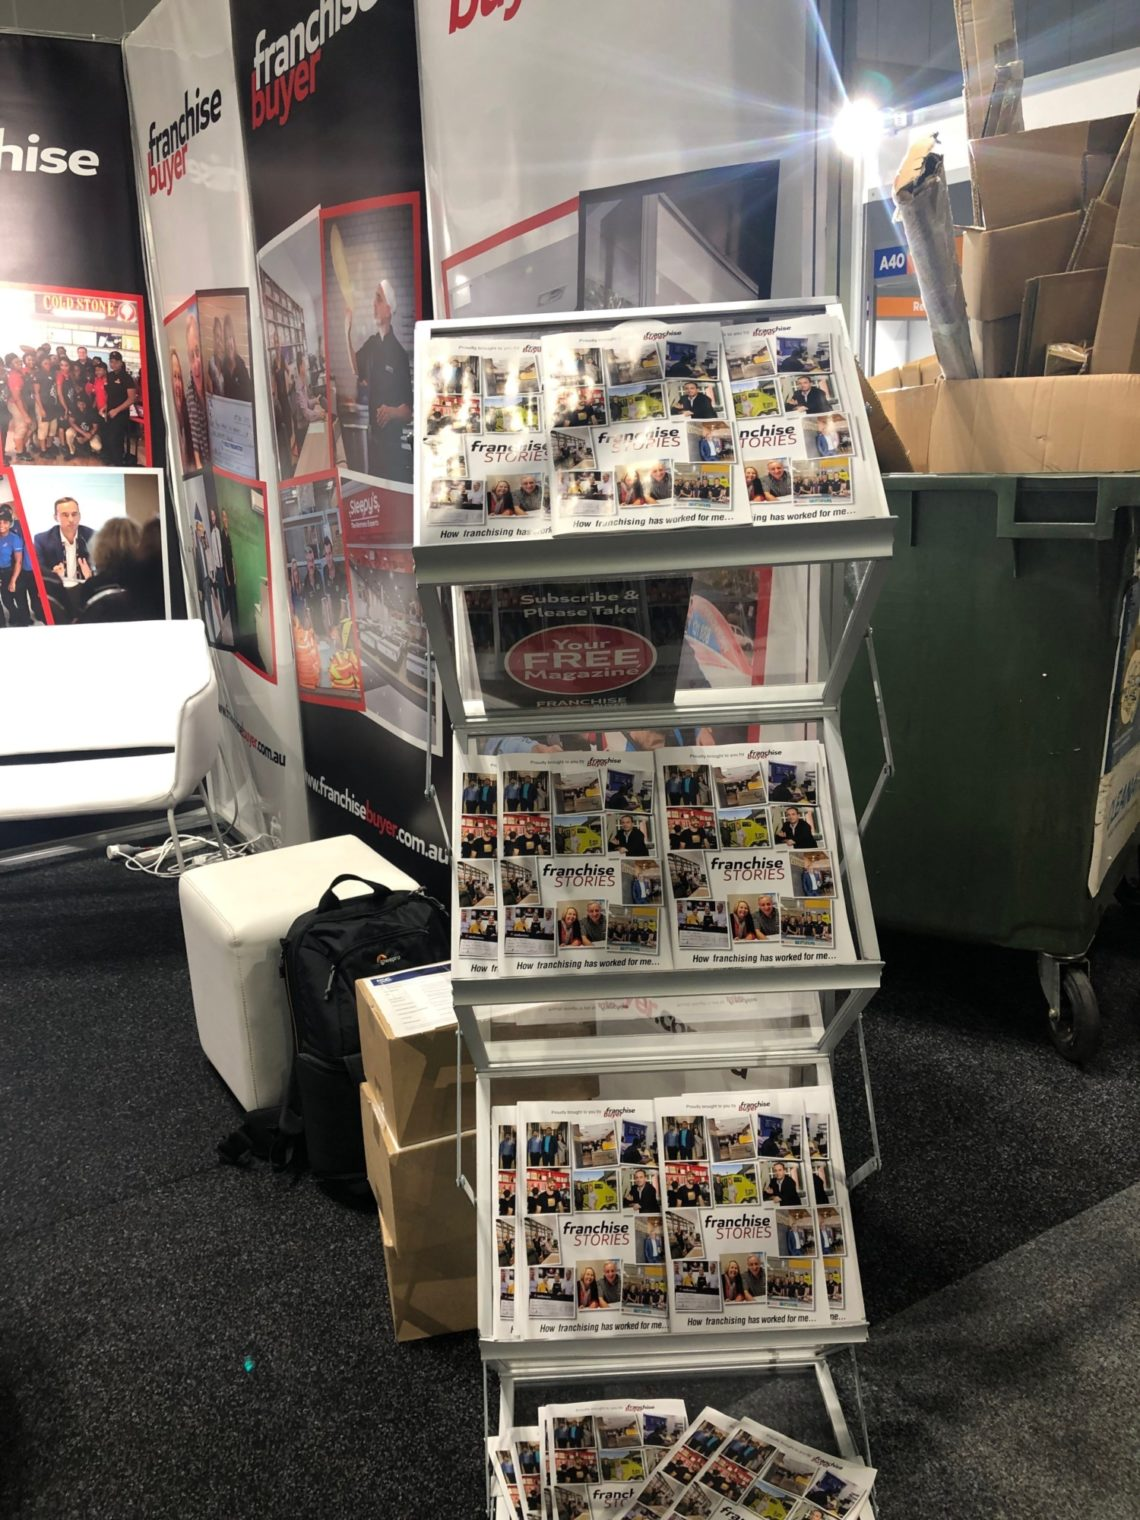 Franchise Stories Publication Sydney Expo Booth 2019